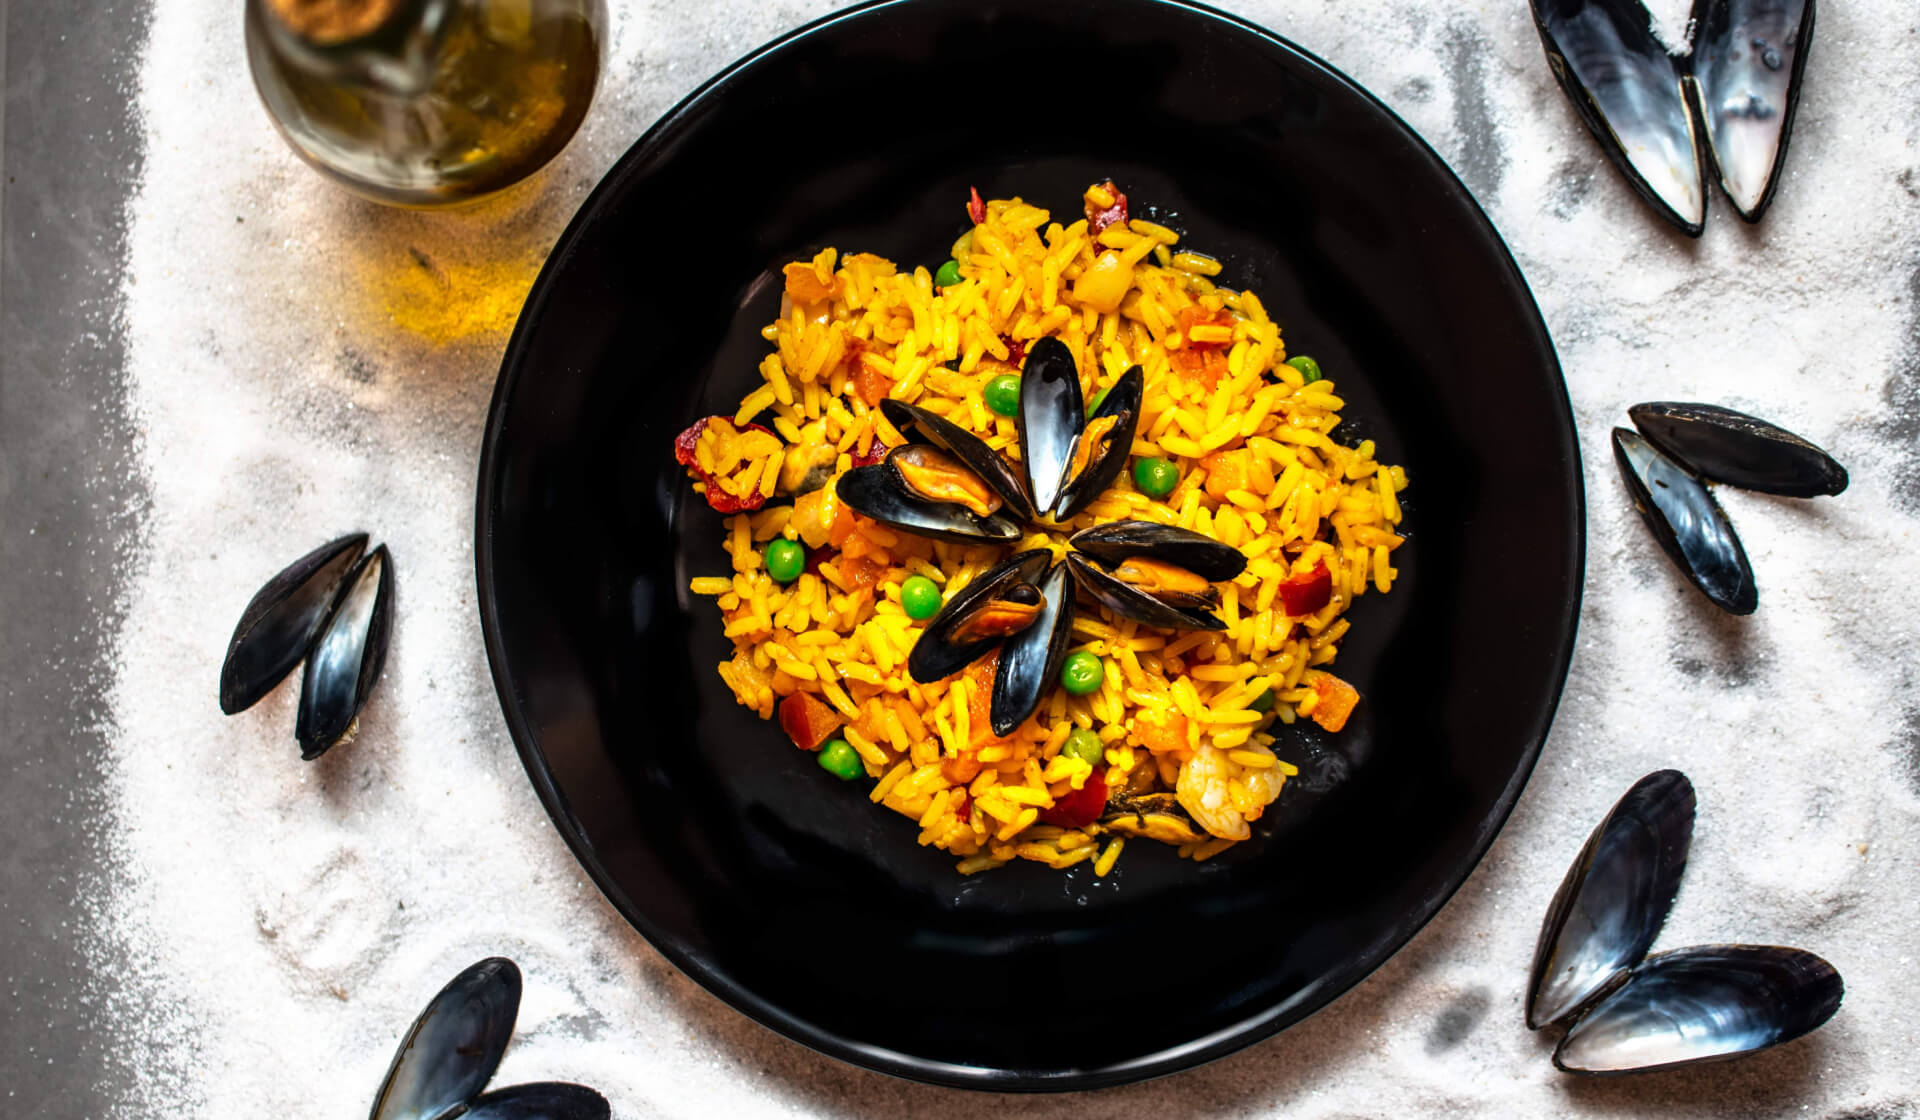 Spanish paella from above with yellow rice, green peas, and clams in a black bowl